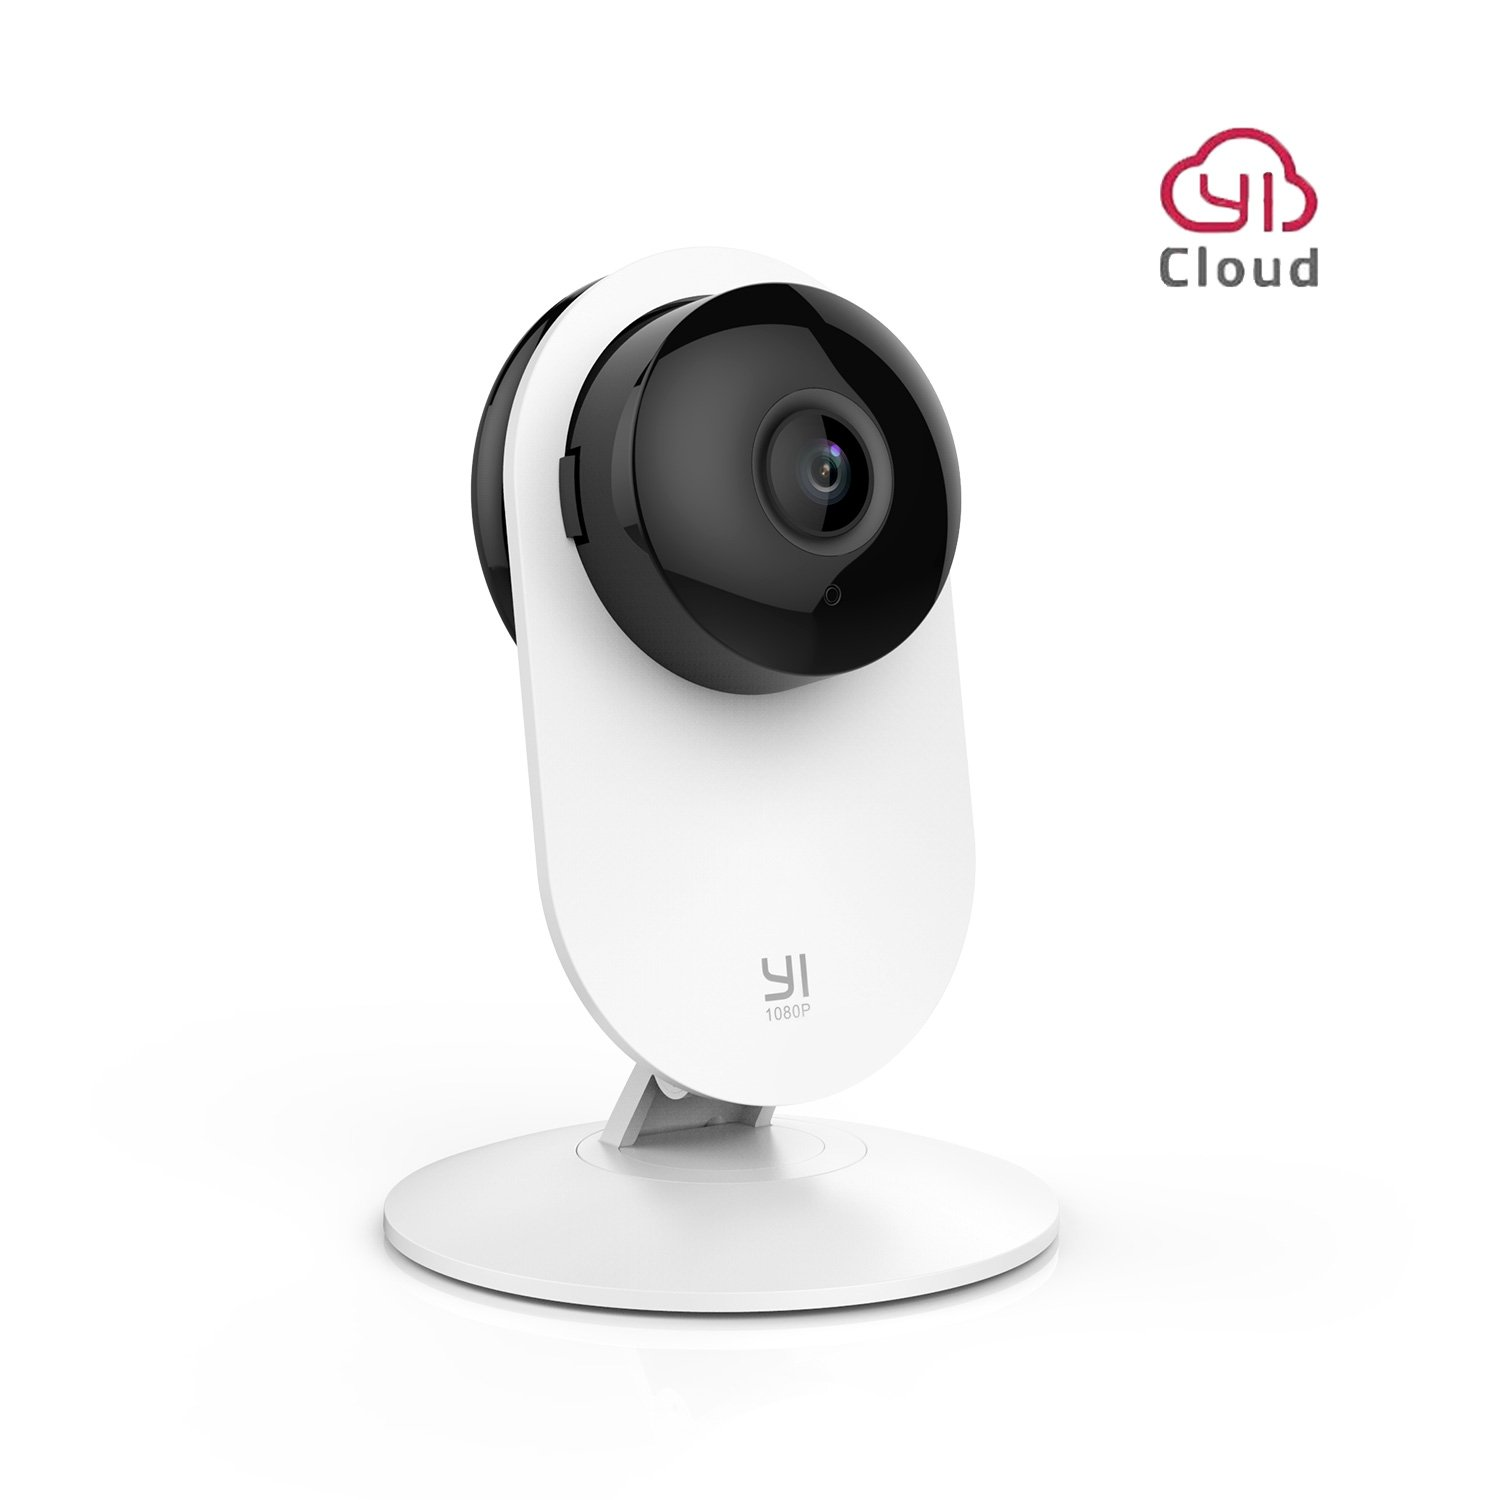 YI 1080P Wireless Home Camera Security Surveillance Cam WiFi IP Camera with Night Vision Motion Detection Baby Crying Alert Live Camera - Cloud Service Available